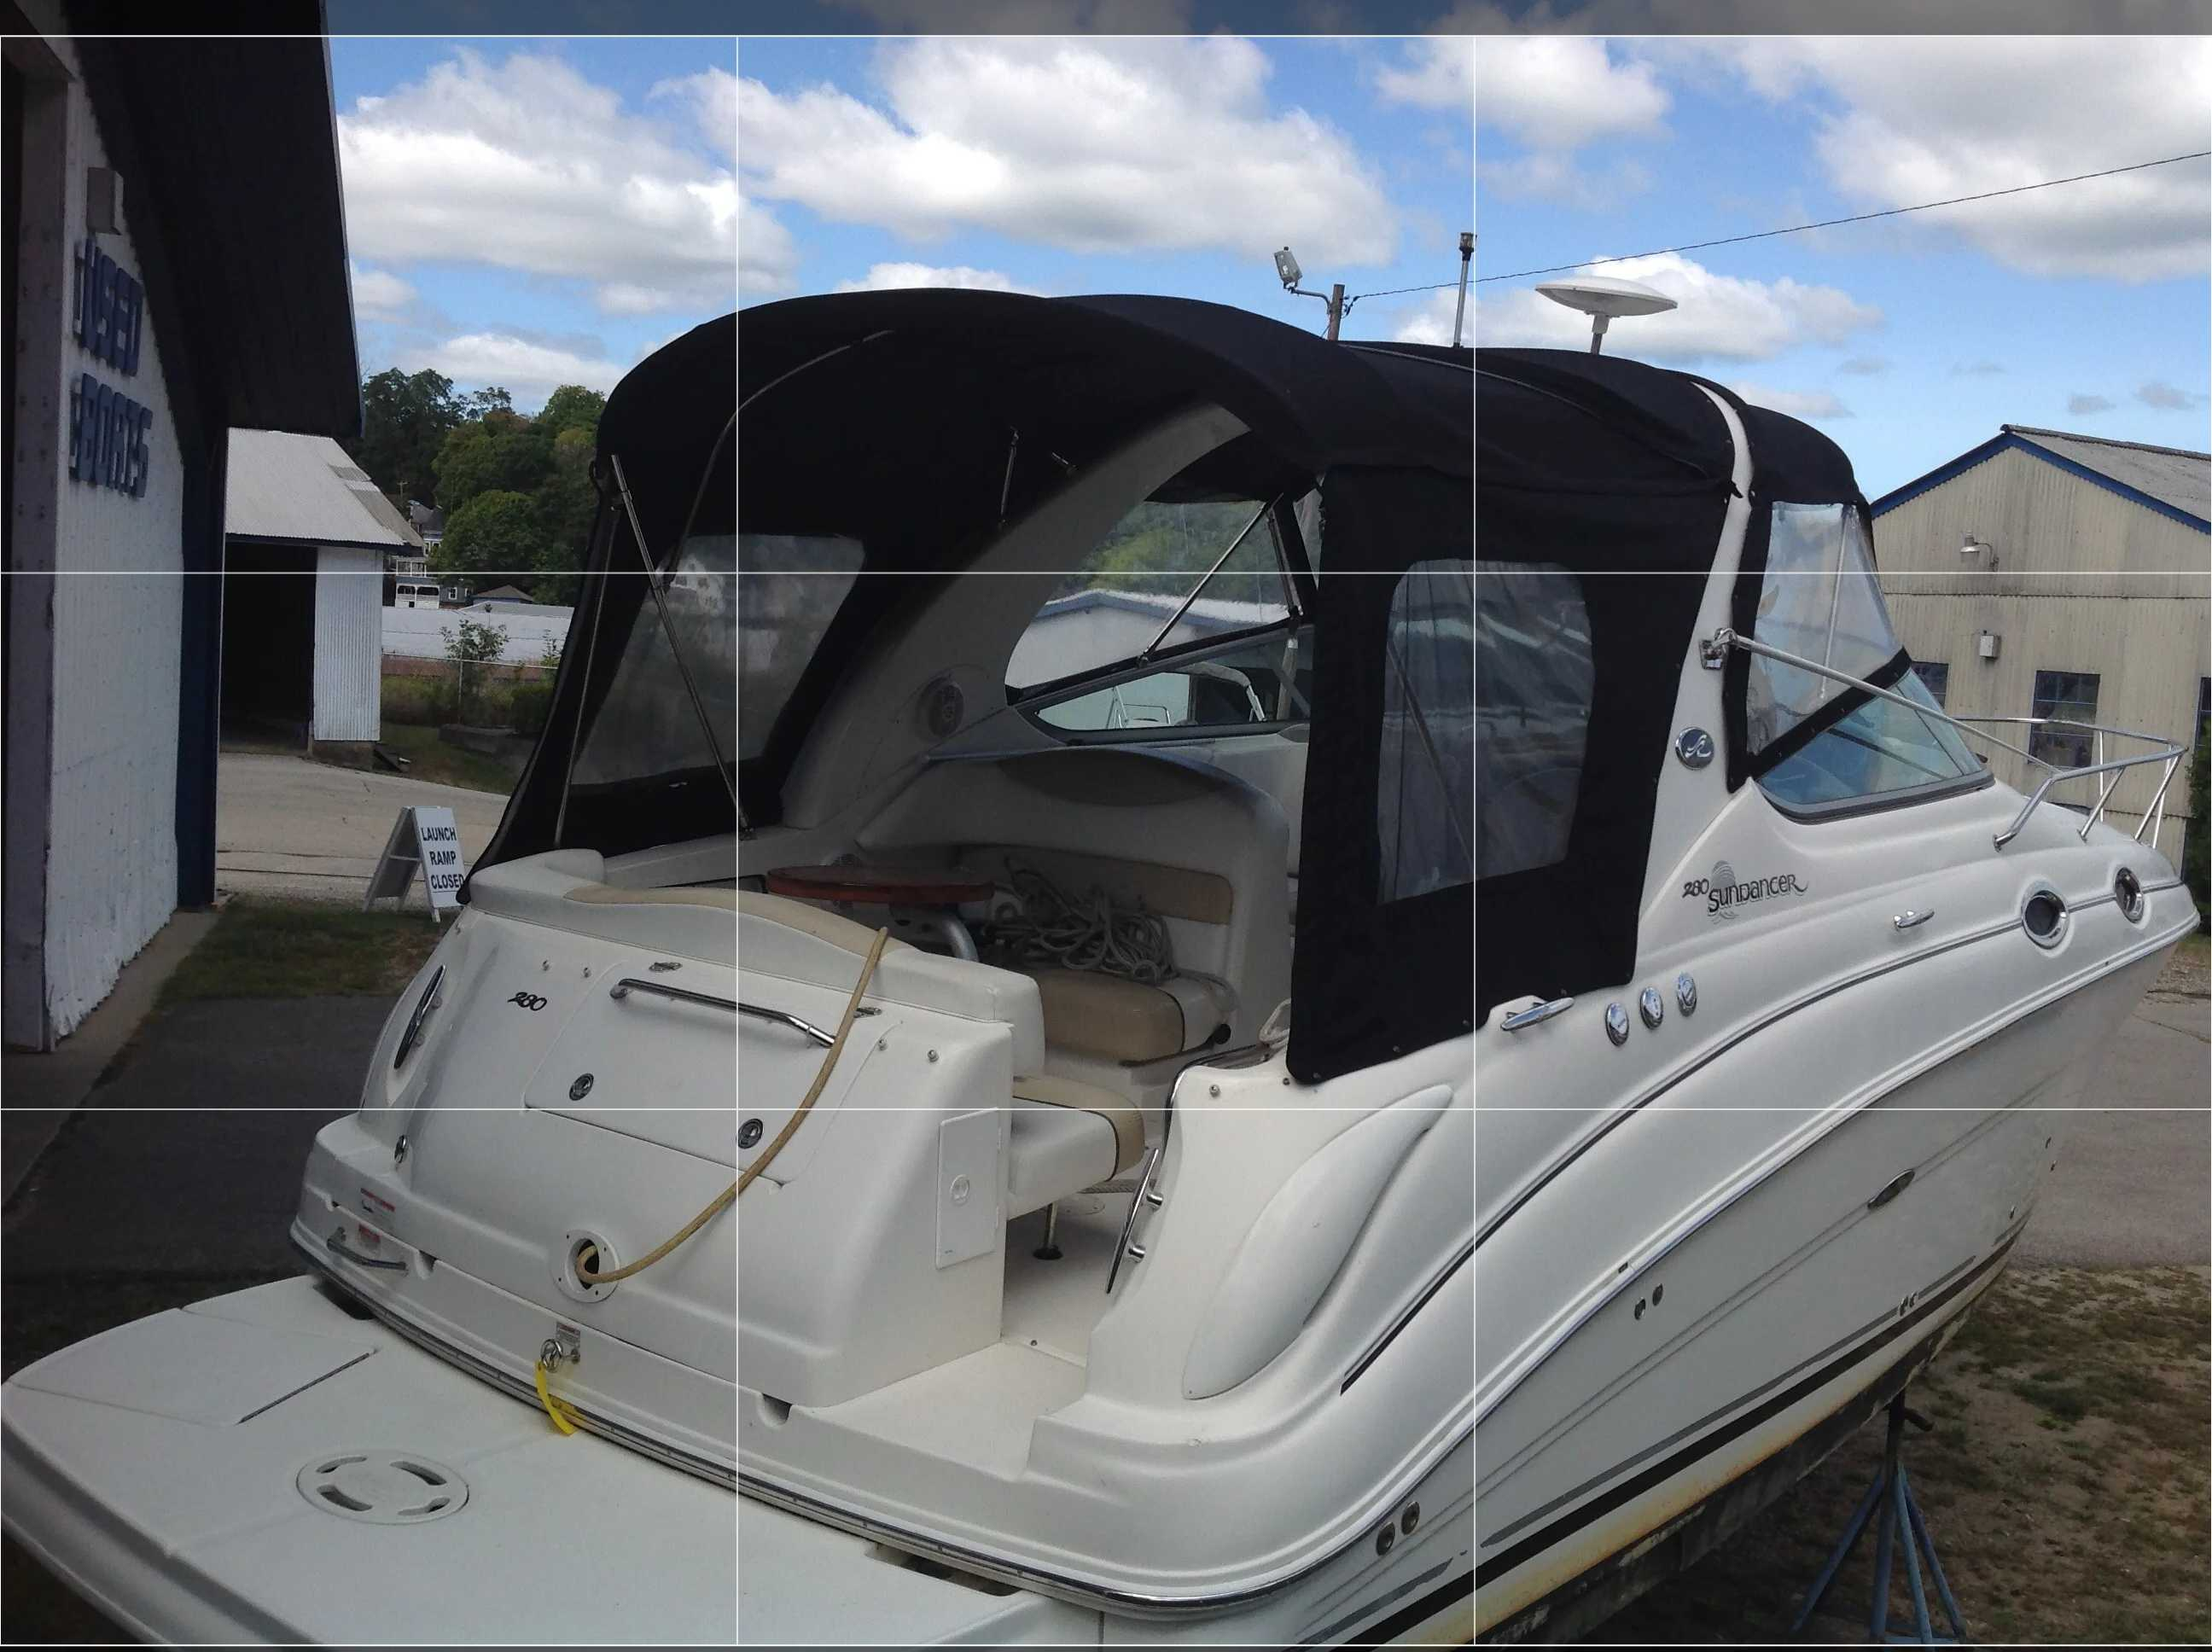 2008 Sea Ray boat for sale, model of the boat is 280 Sundancer & Image # 4 of 14